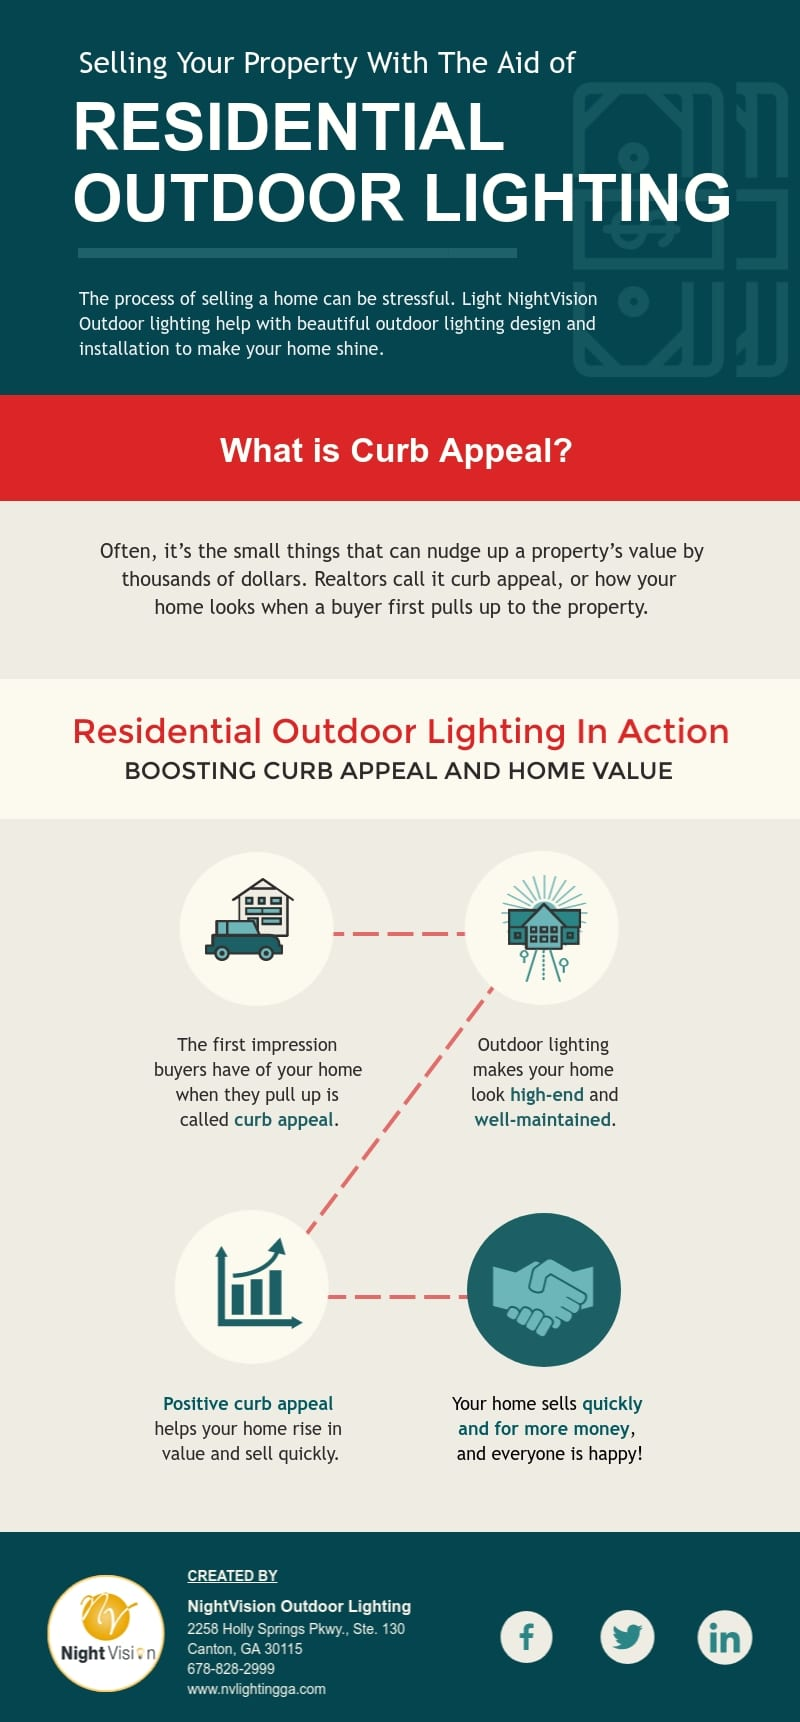 Selling Your Property With The Aid of Residential Outdoor Lighting [infographic]